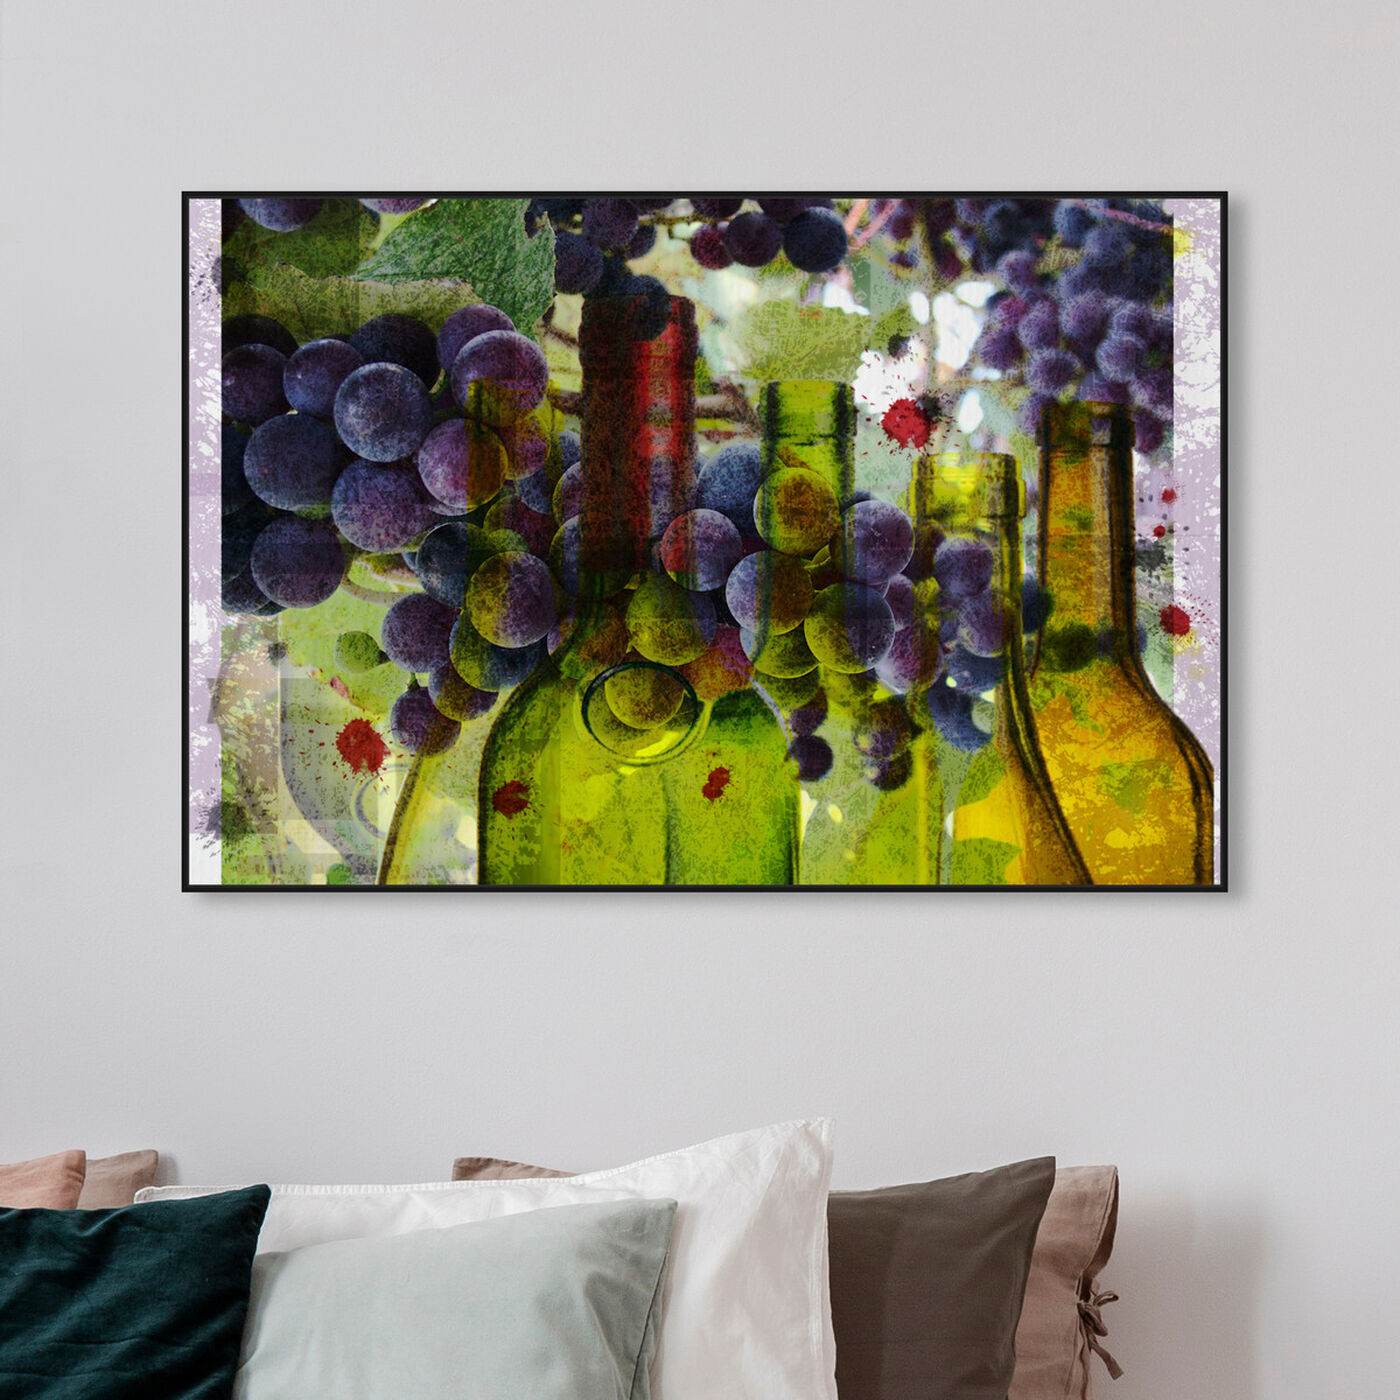 Hanging view of Parfait Frutilicious featuring food and cuisine and fruits art.